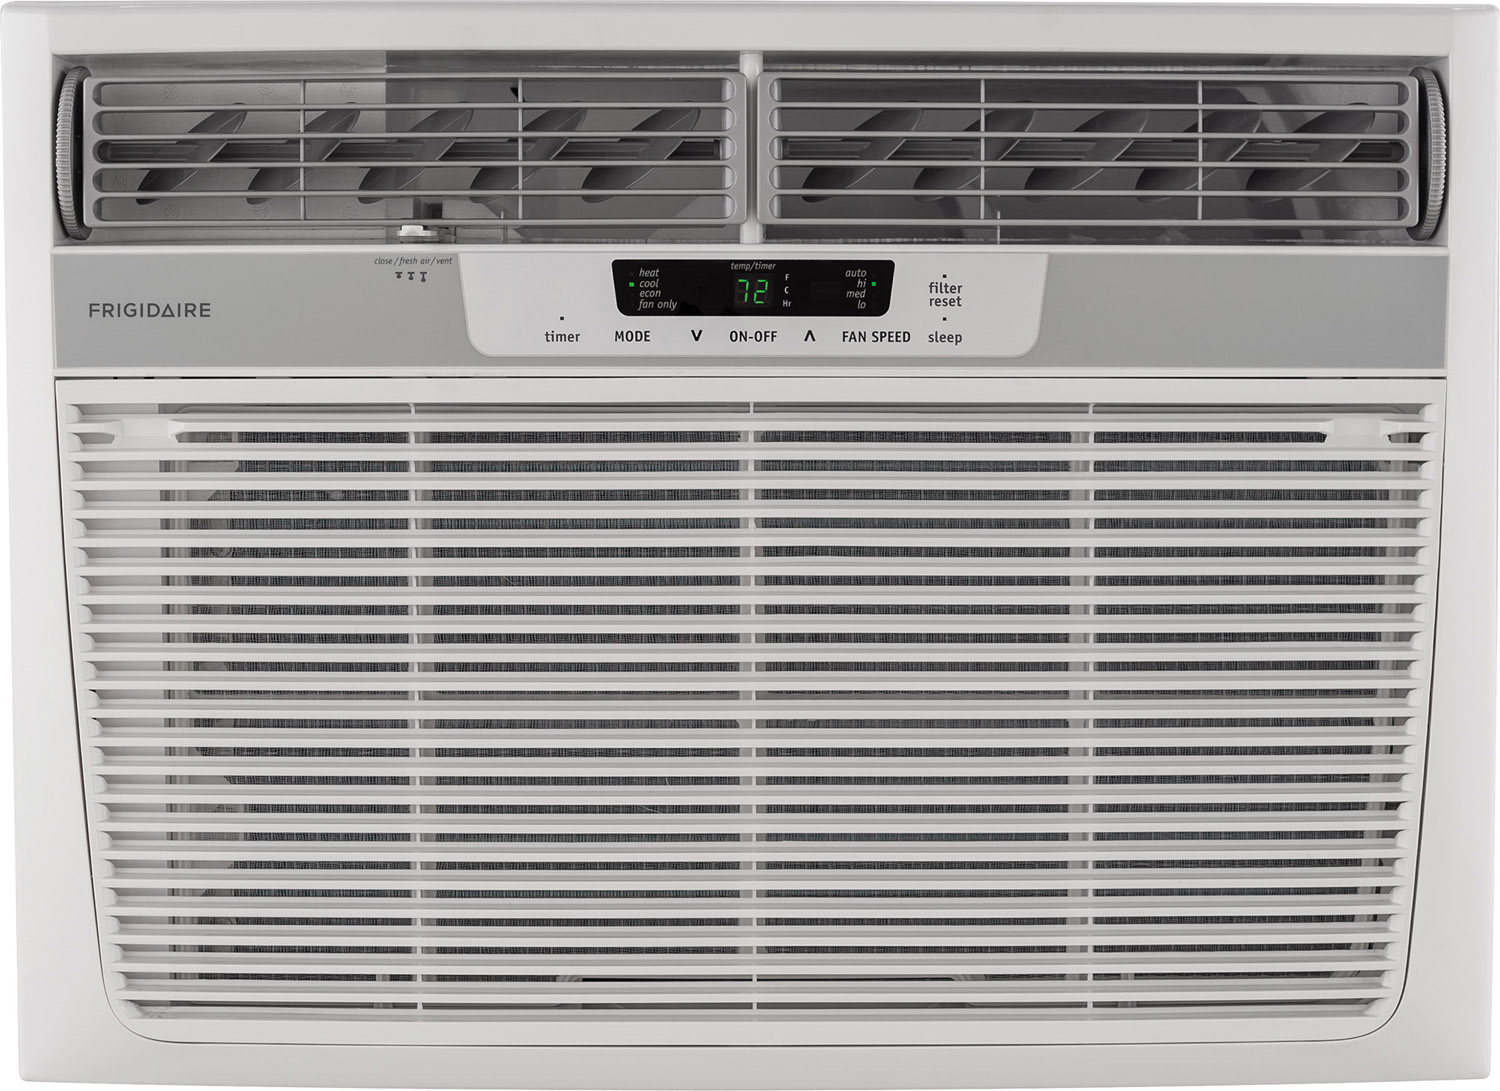 Frigidaire 18,500 BTU 10.7 EER 230V Window Air Conditioner